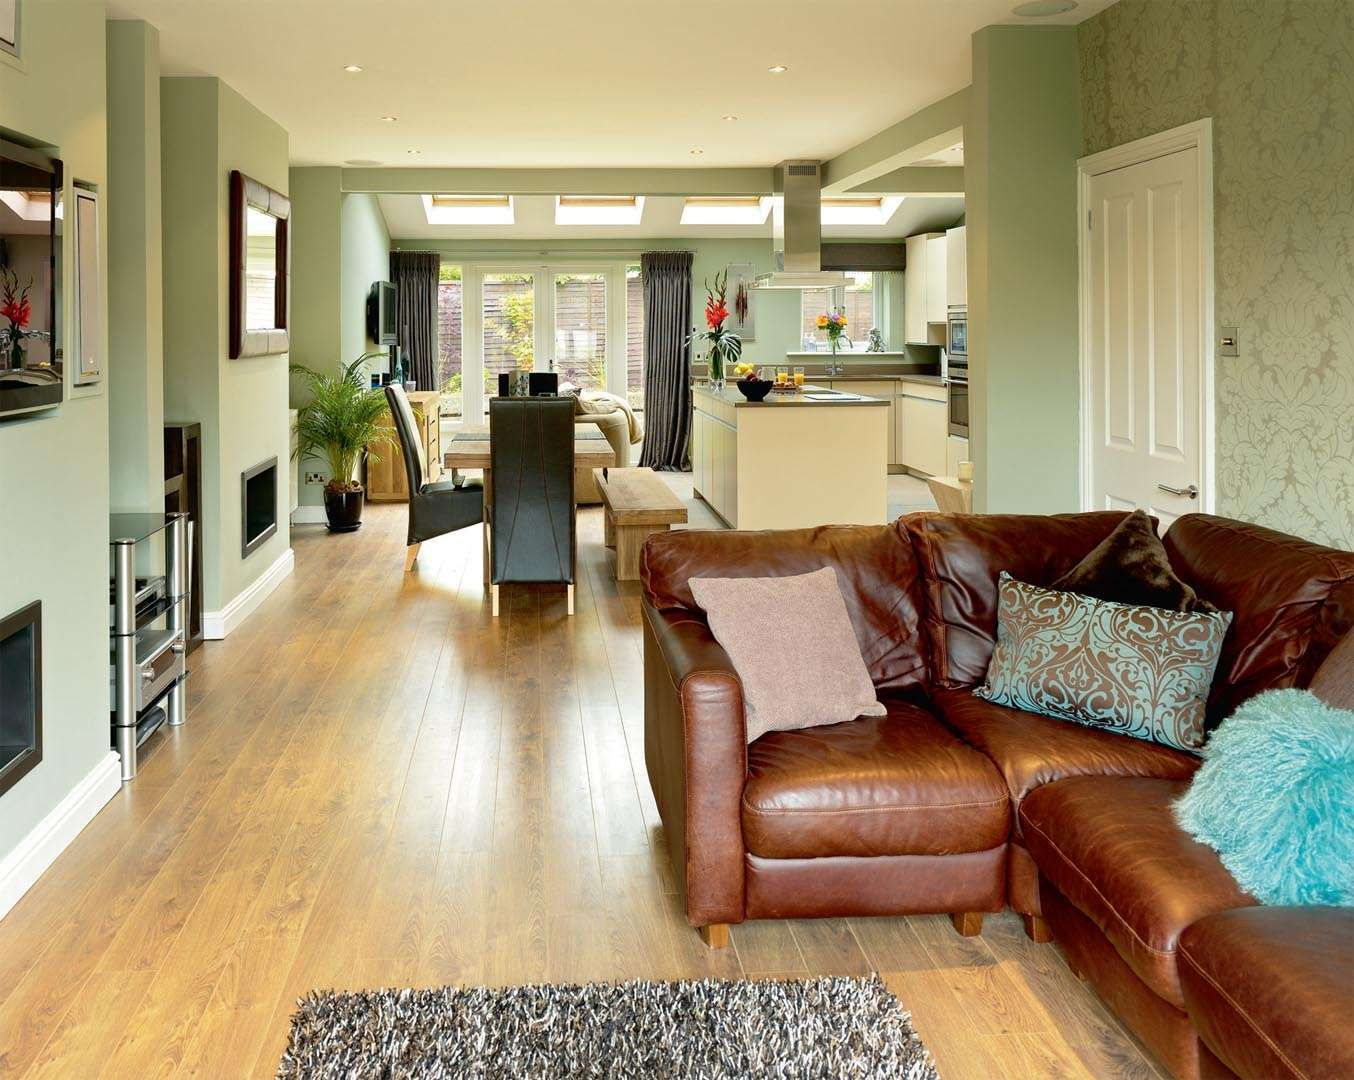 Similar Layout To Current Rooms With Rear Extension Added Seperate Playroom House